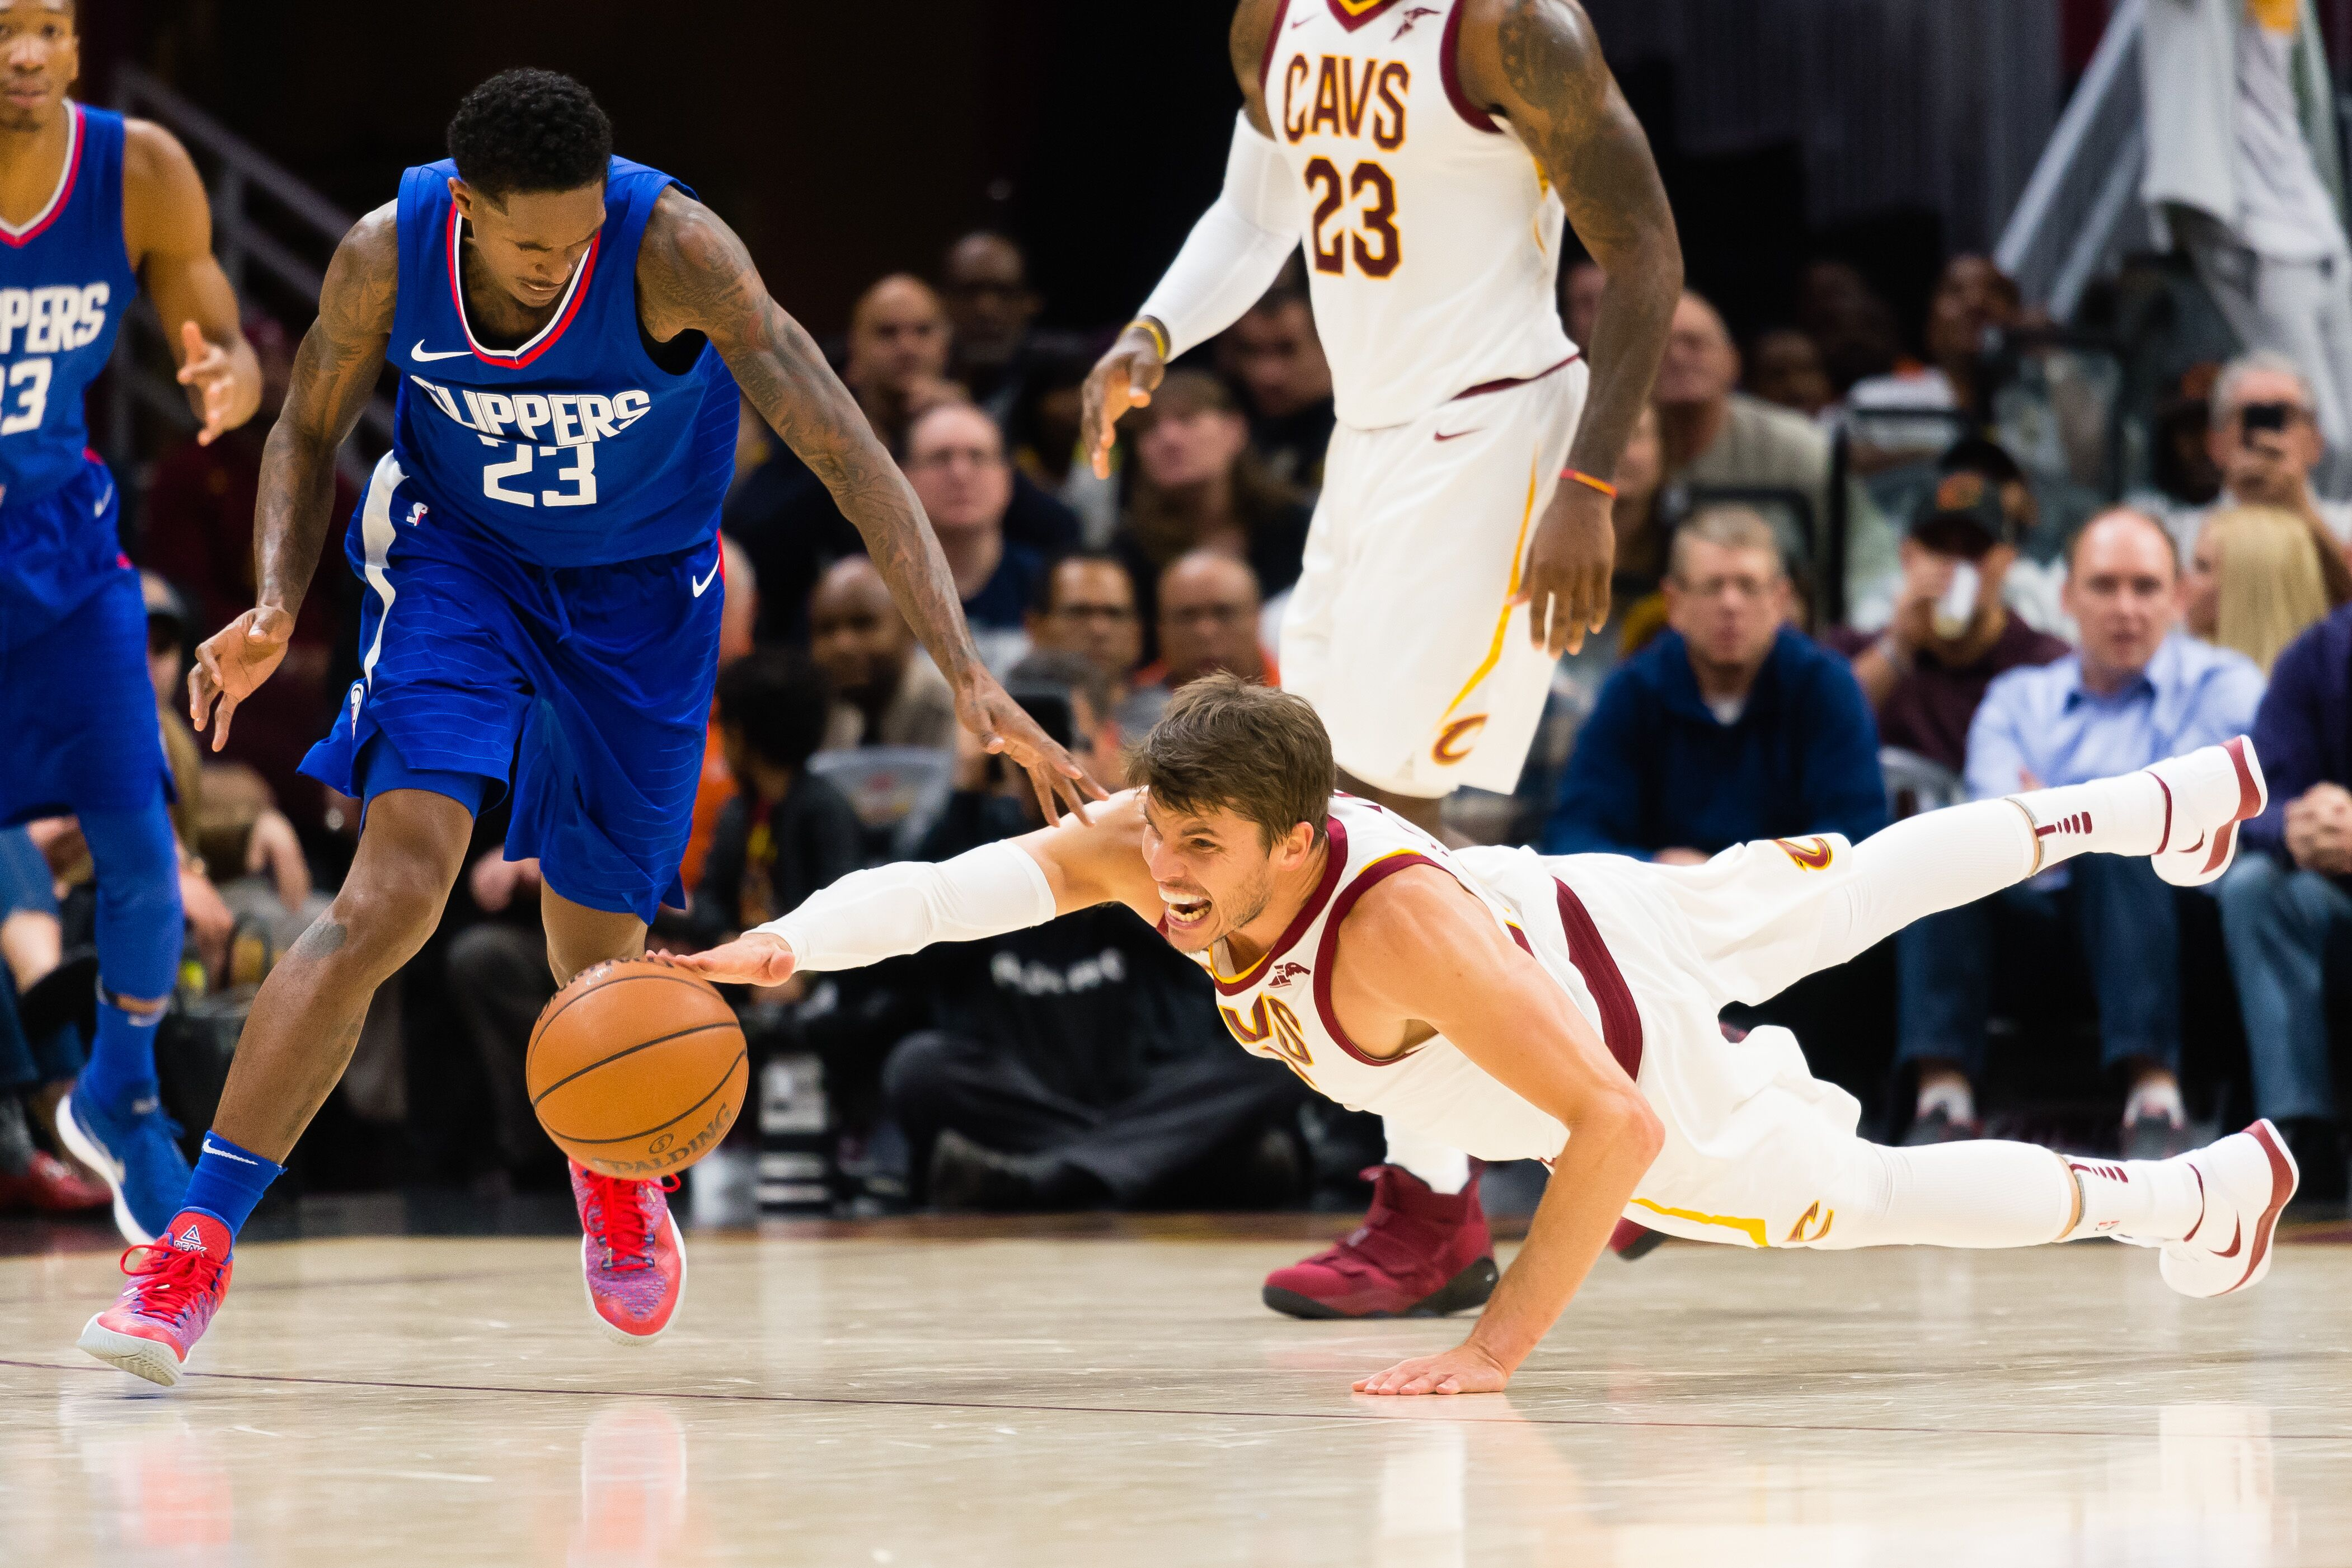 875532290-los-angeles-clippers-v-cleveland-cavaliers.jpg